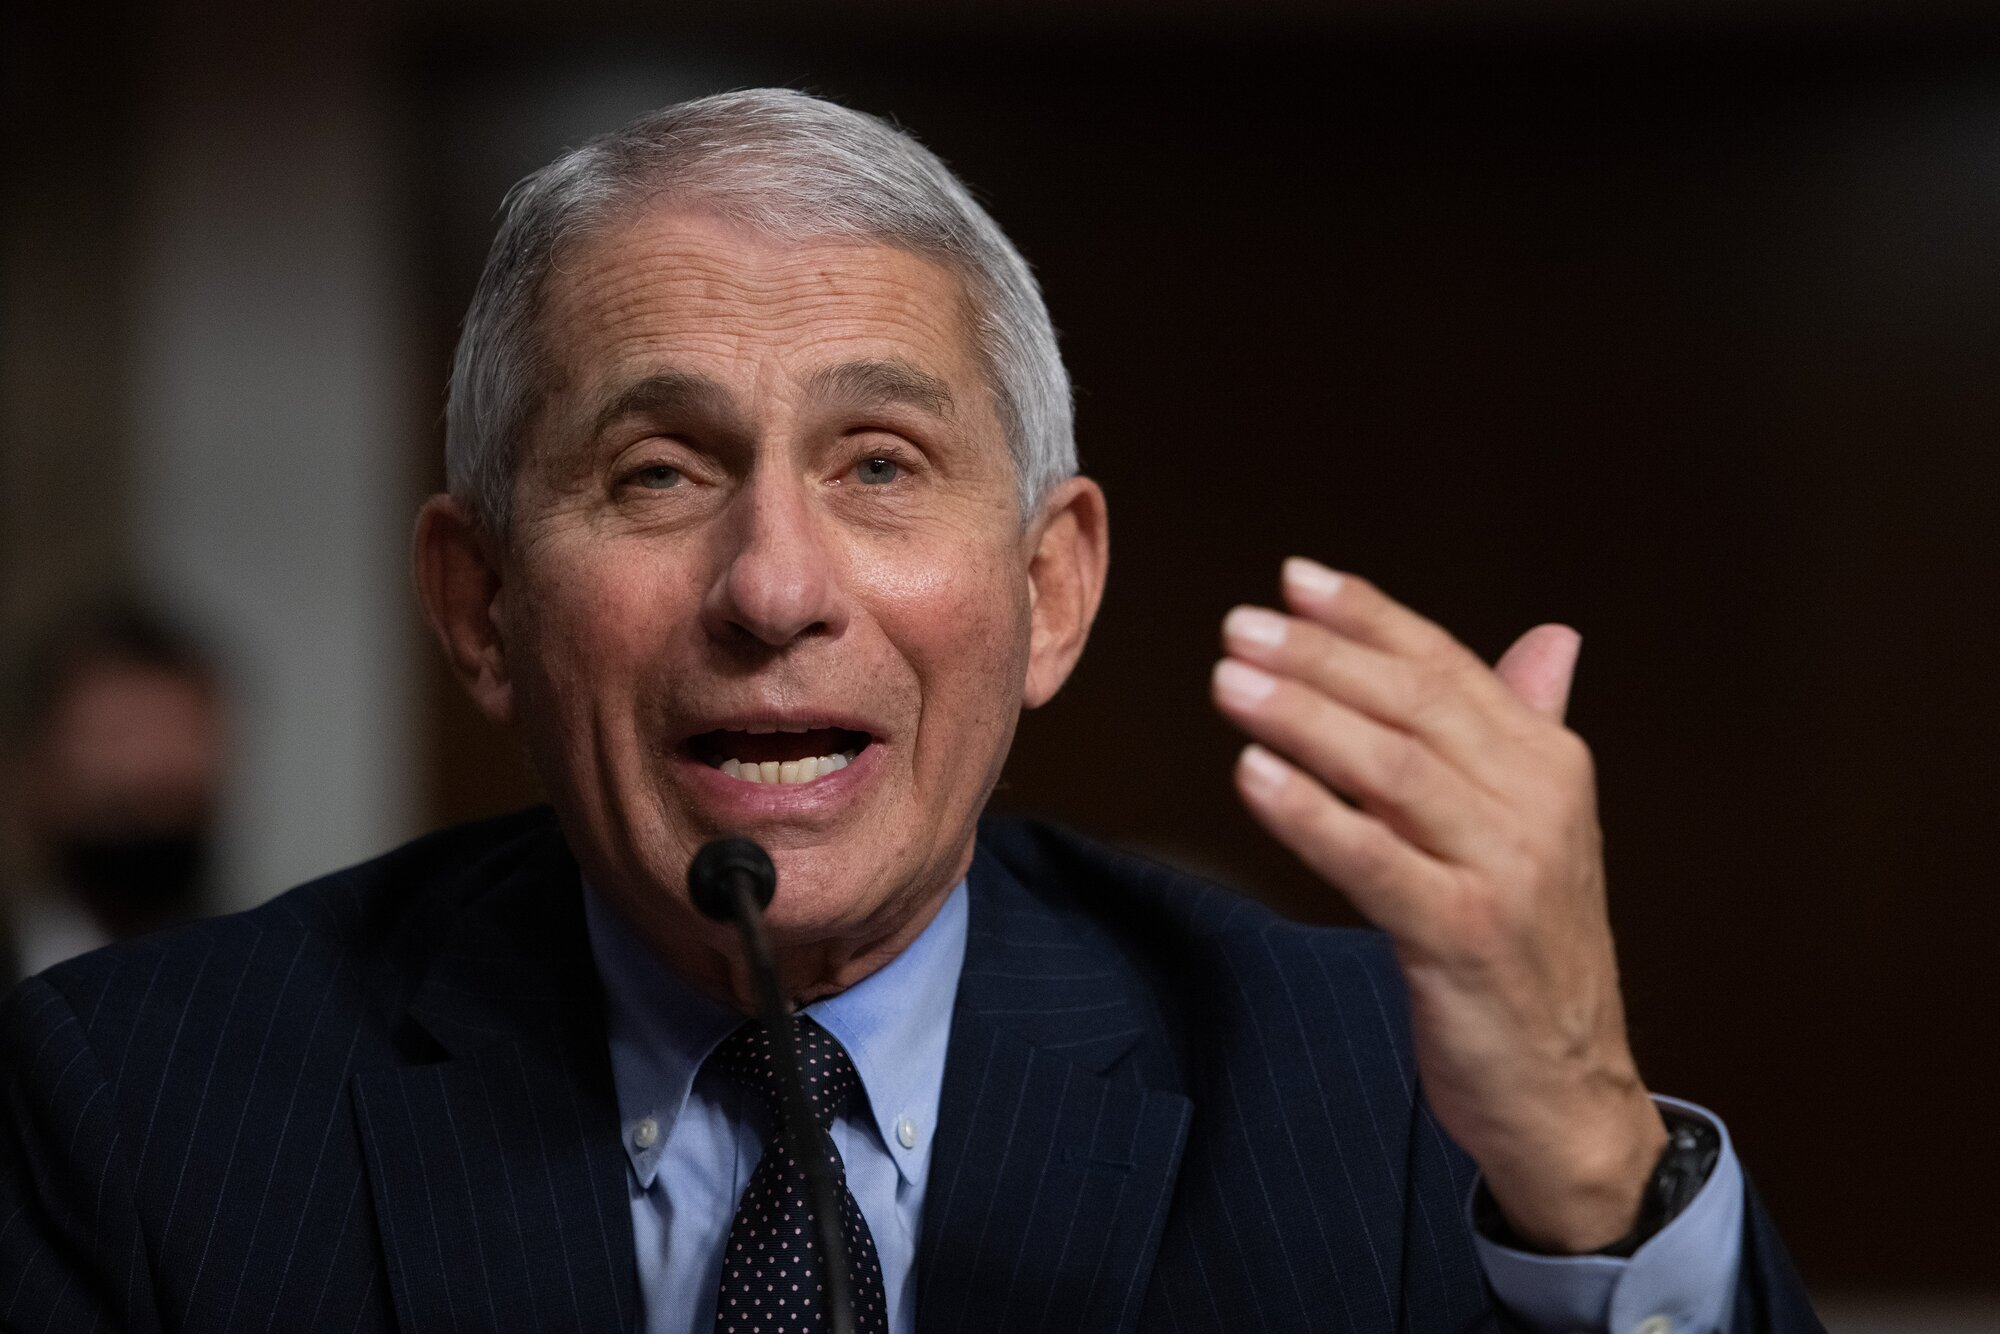 This infuriating video is why people like Dr. Fauci are so worried right now